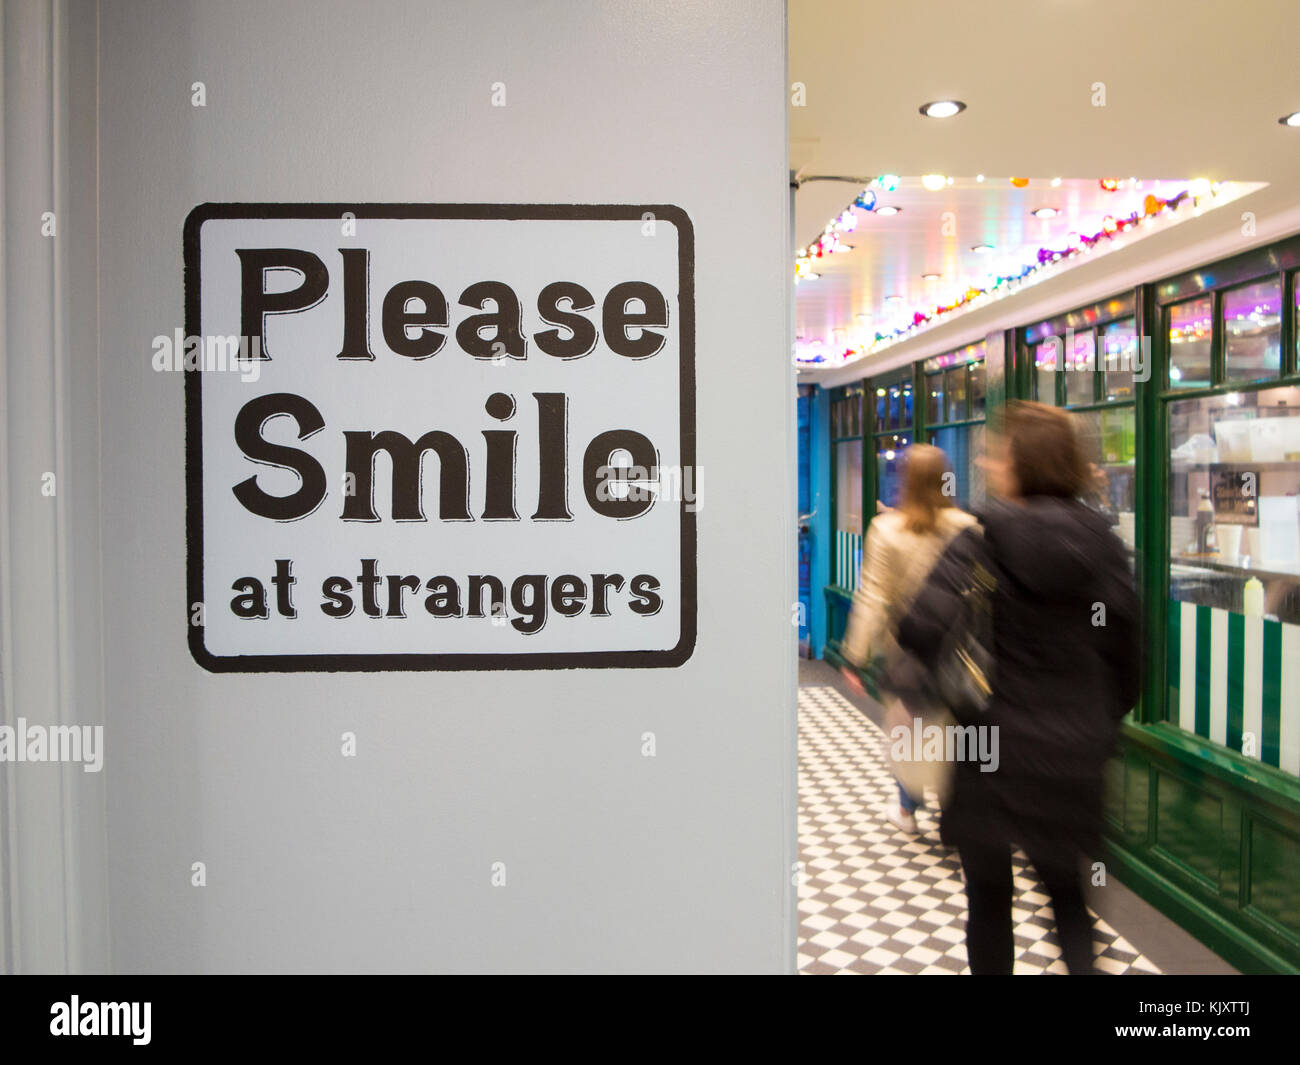 A notice requesting that people smile at each other - Stock Image